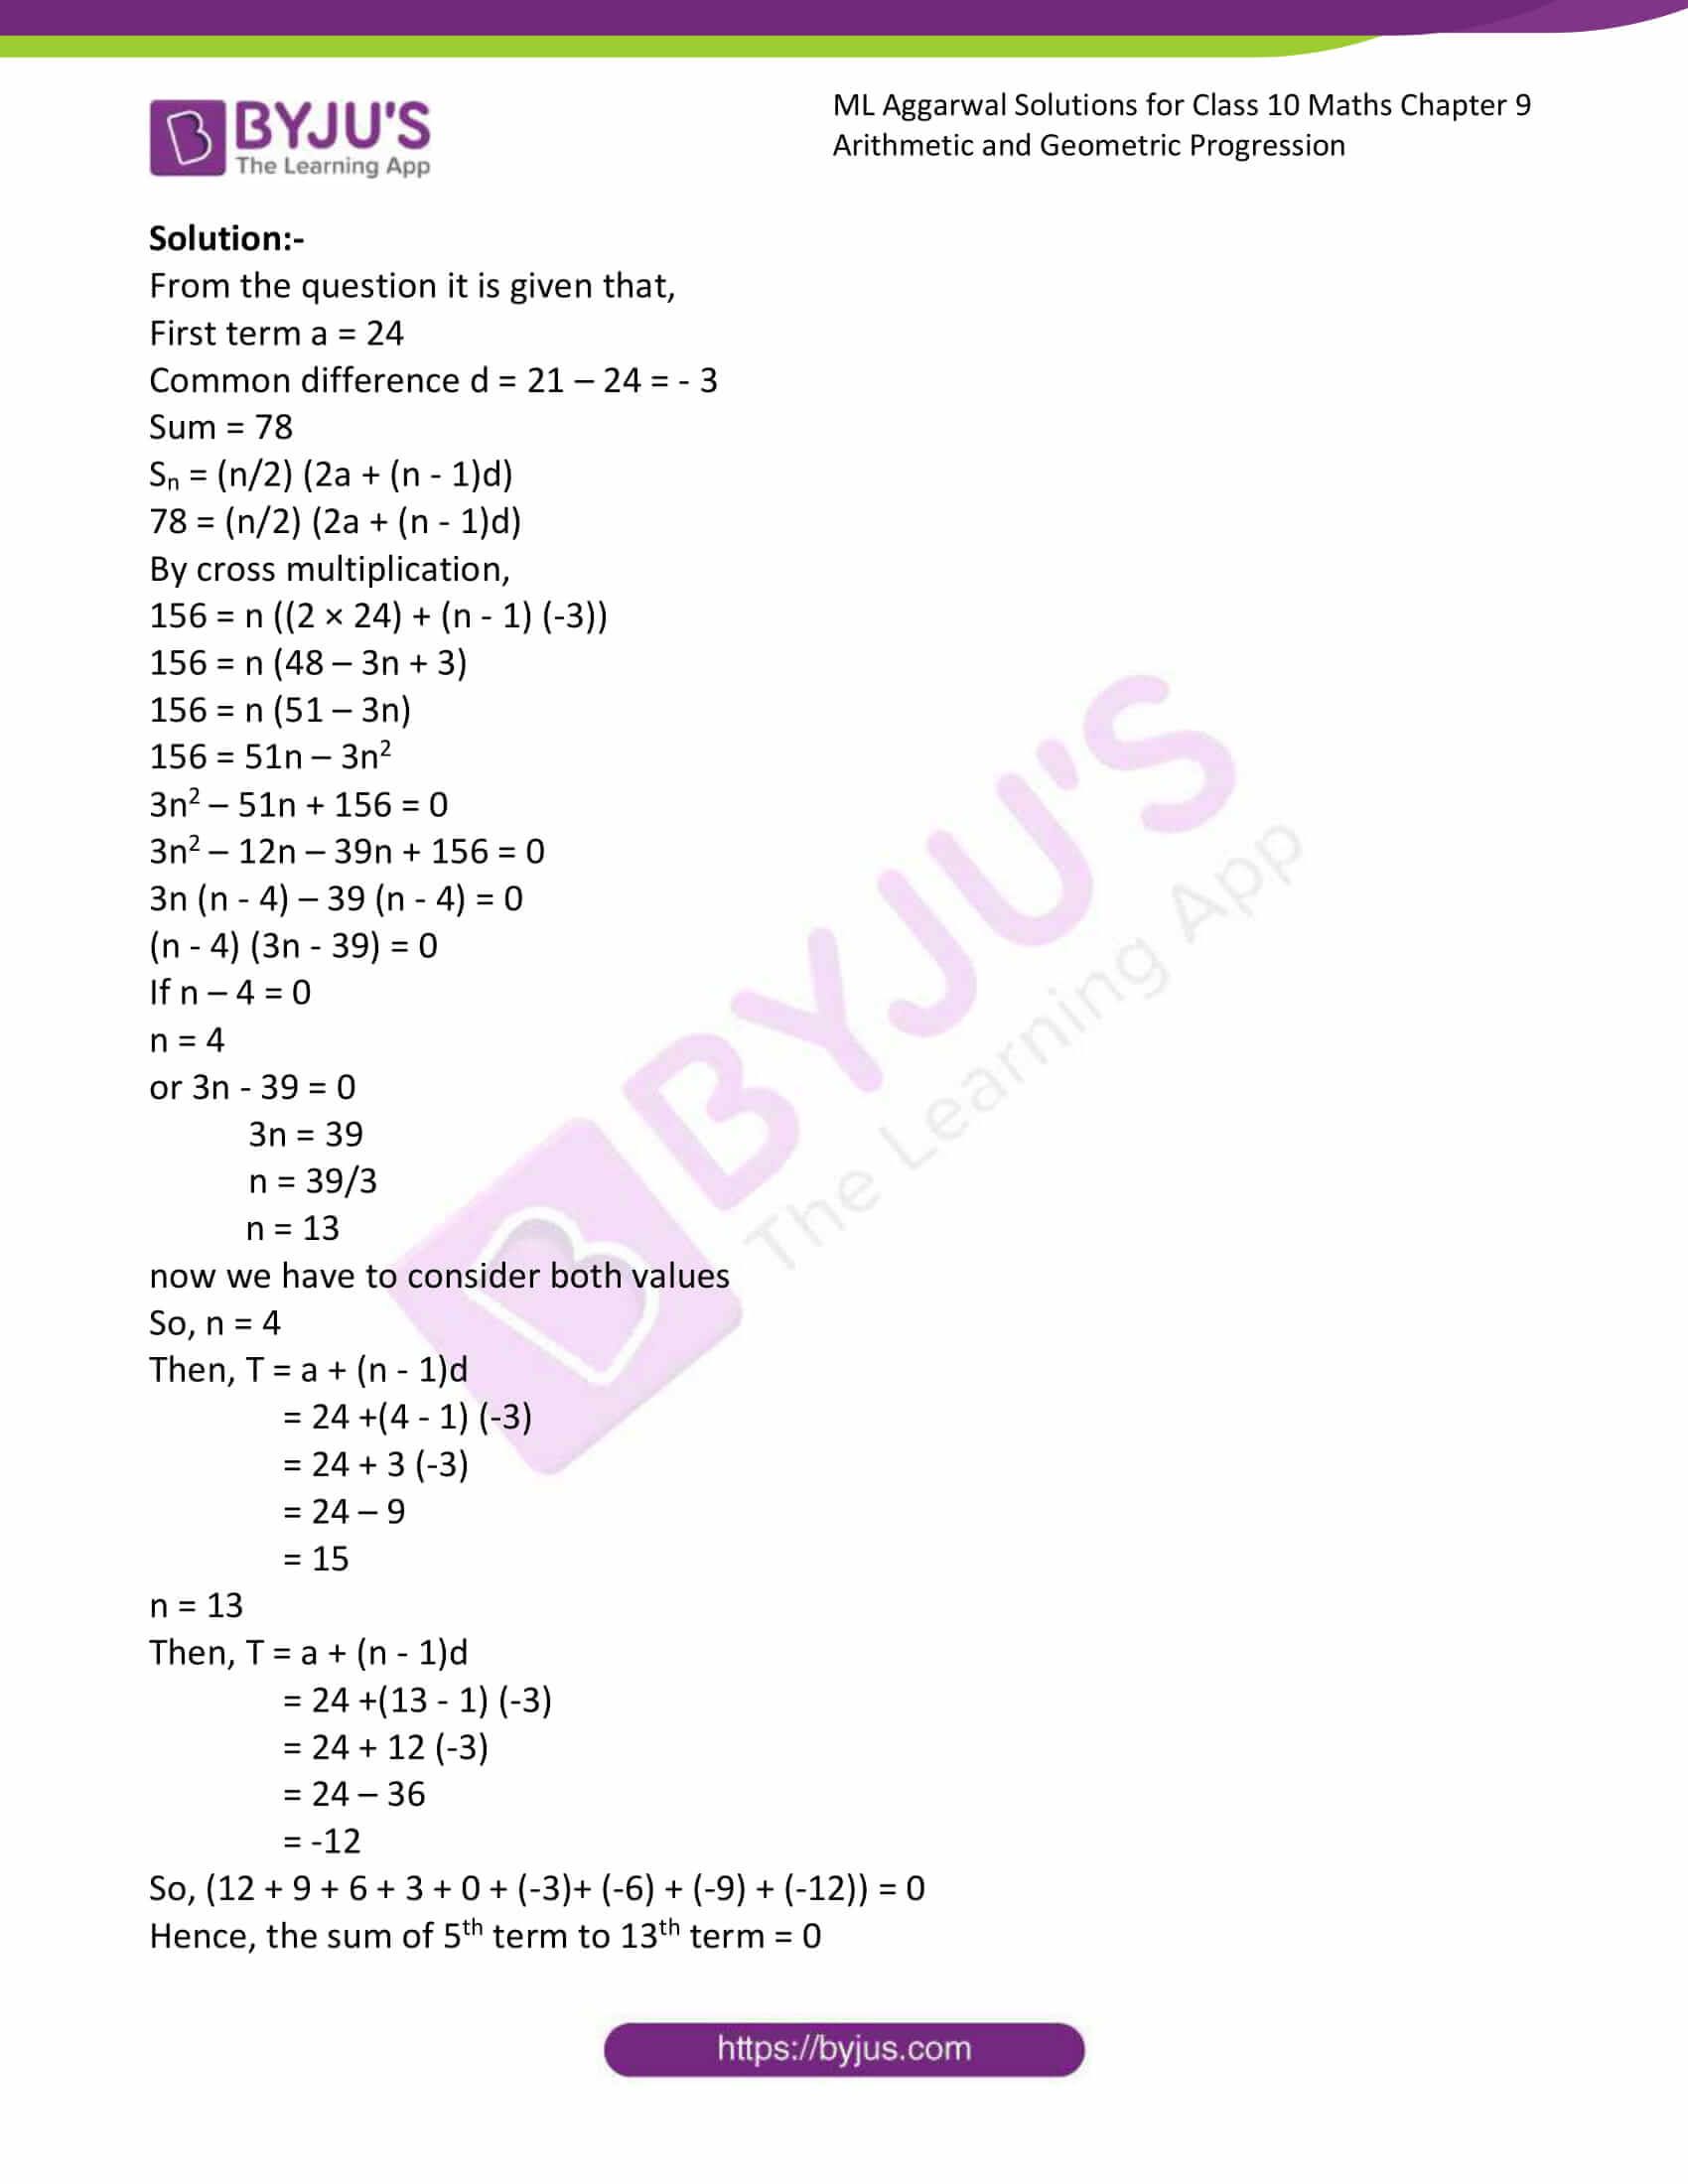 ml aggarwal solutions class 10 maths chapter 9 36